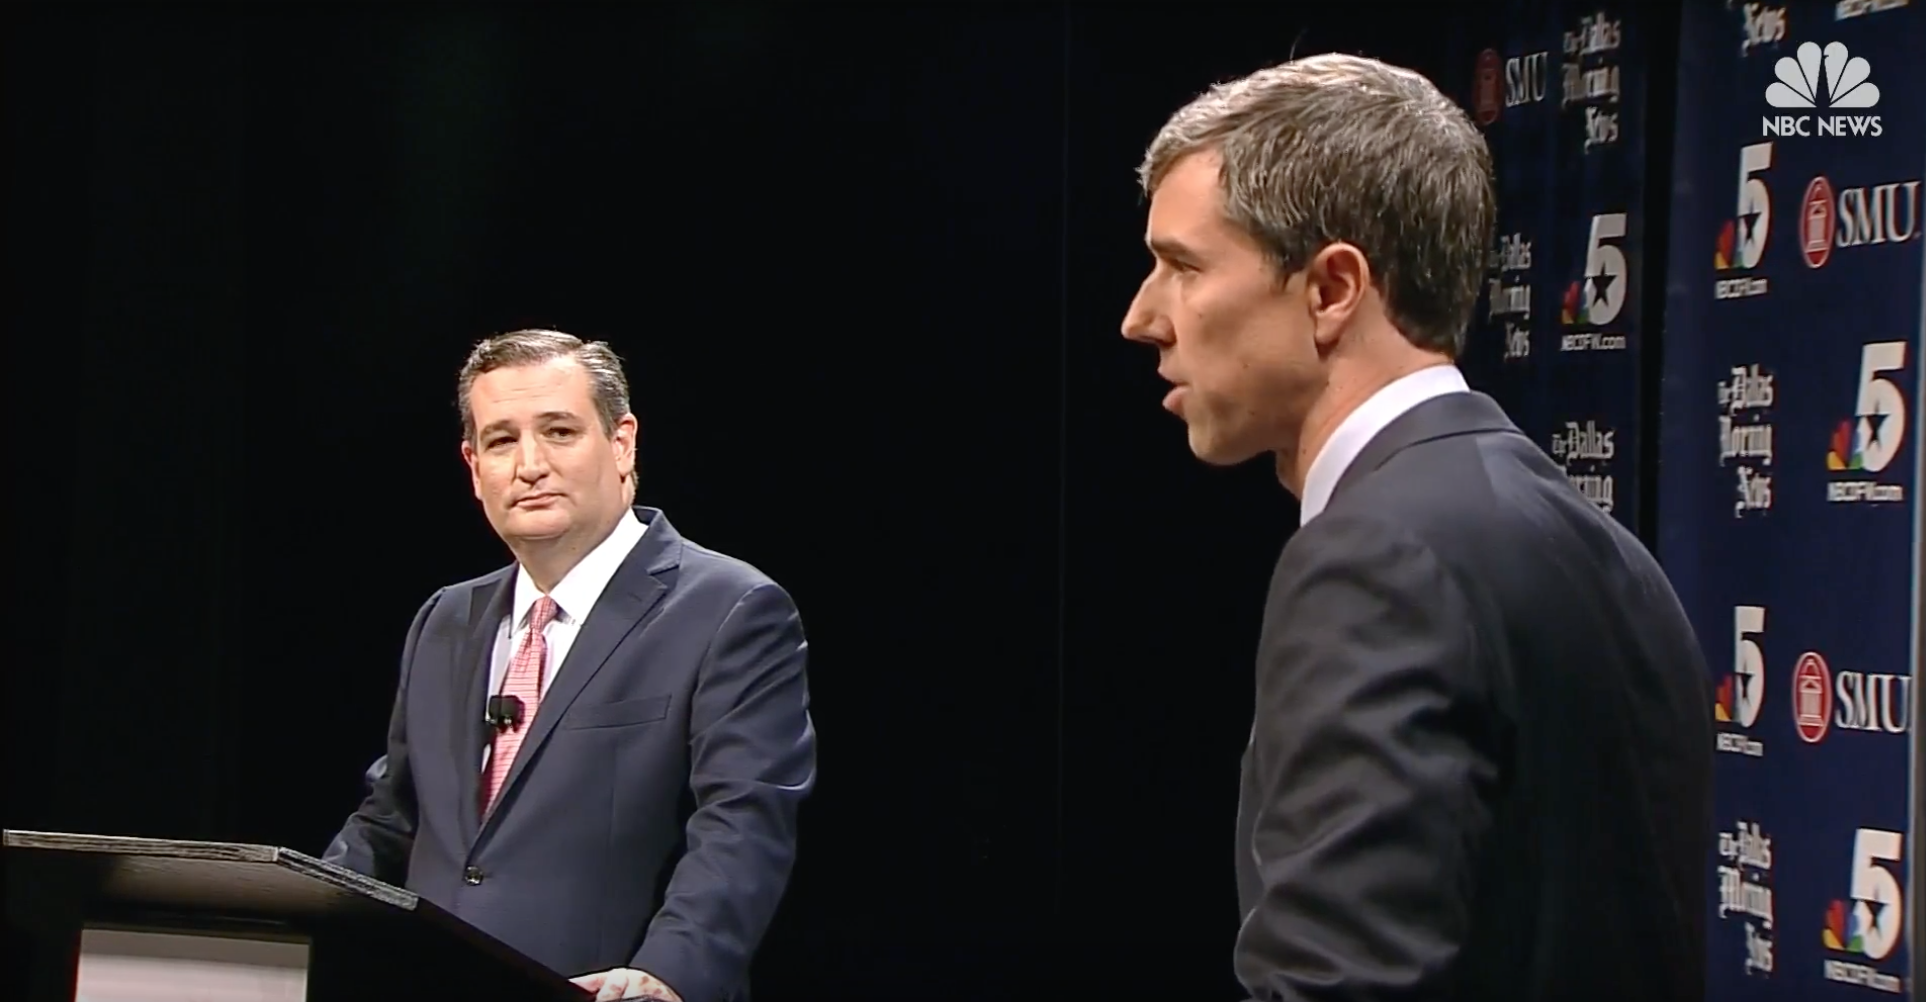 In Texas Beto O'Rourke and Ted Cruz Face Off in Salty Debate – Cannabis Came Up